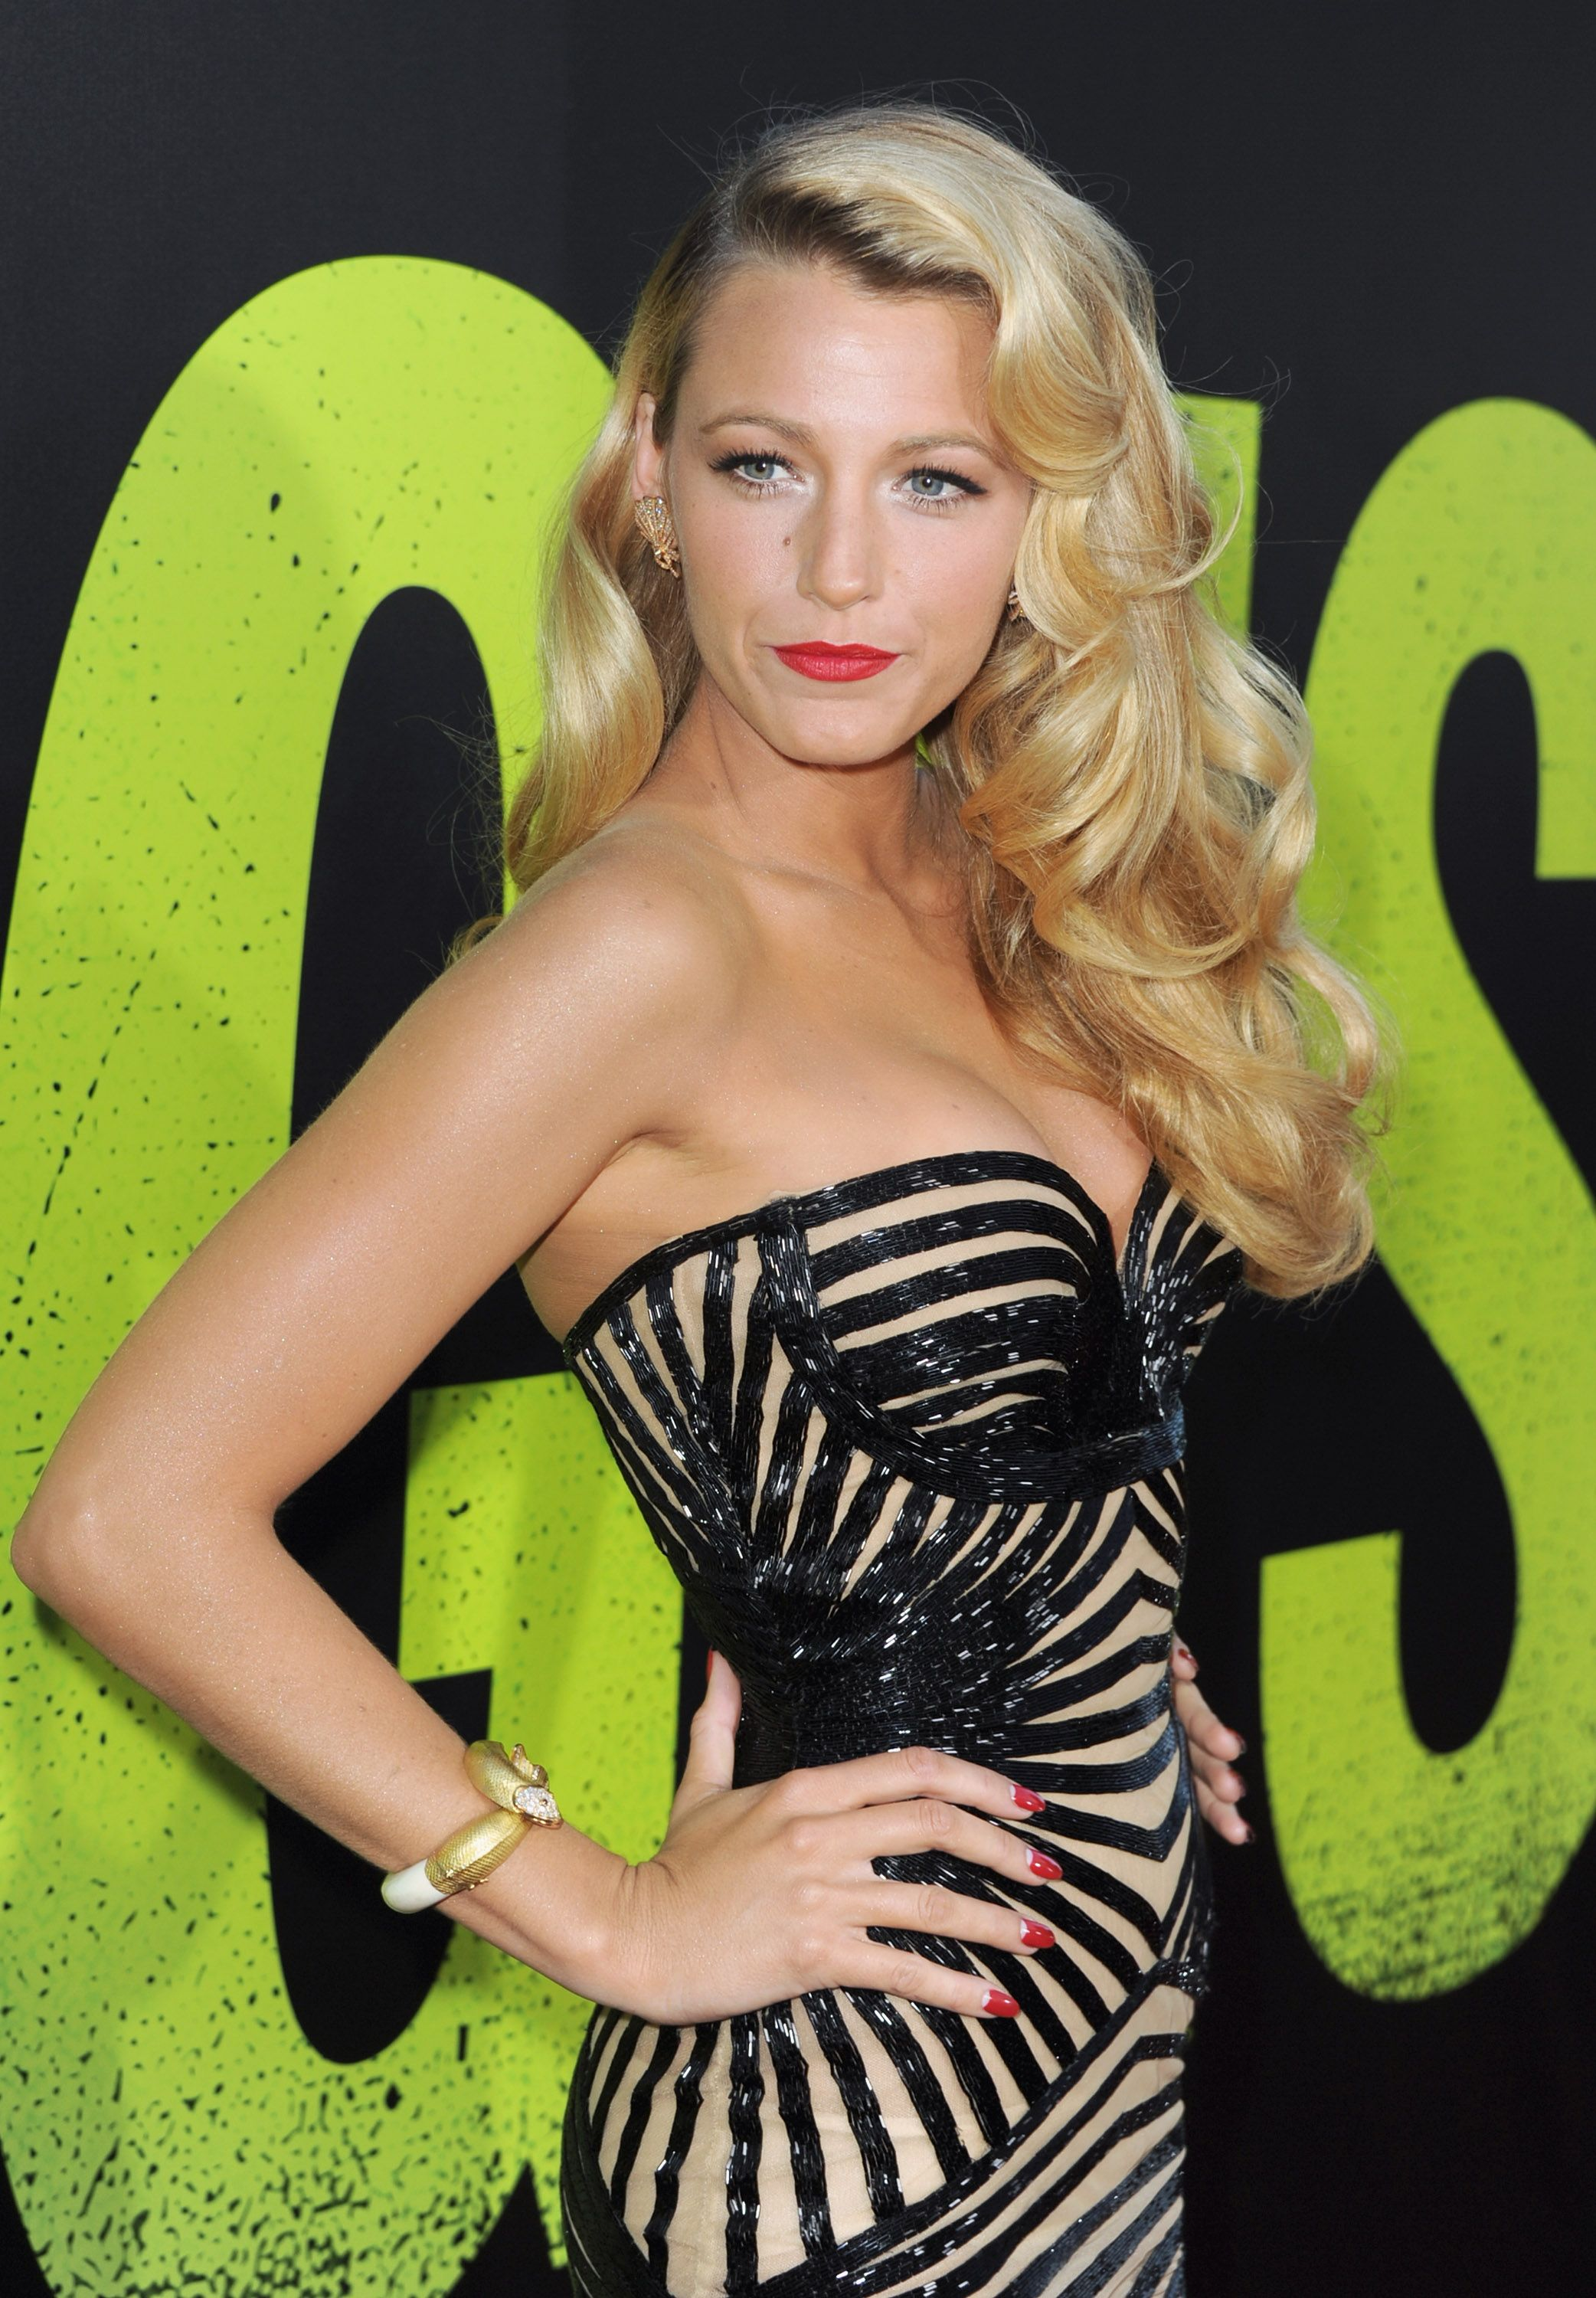 Blake lively wowed fans at the savages la premiere in a zuhair